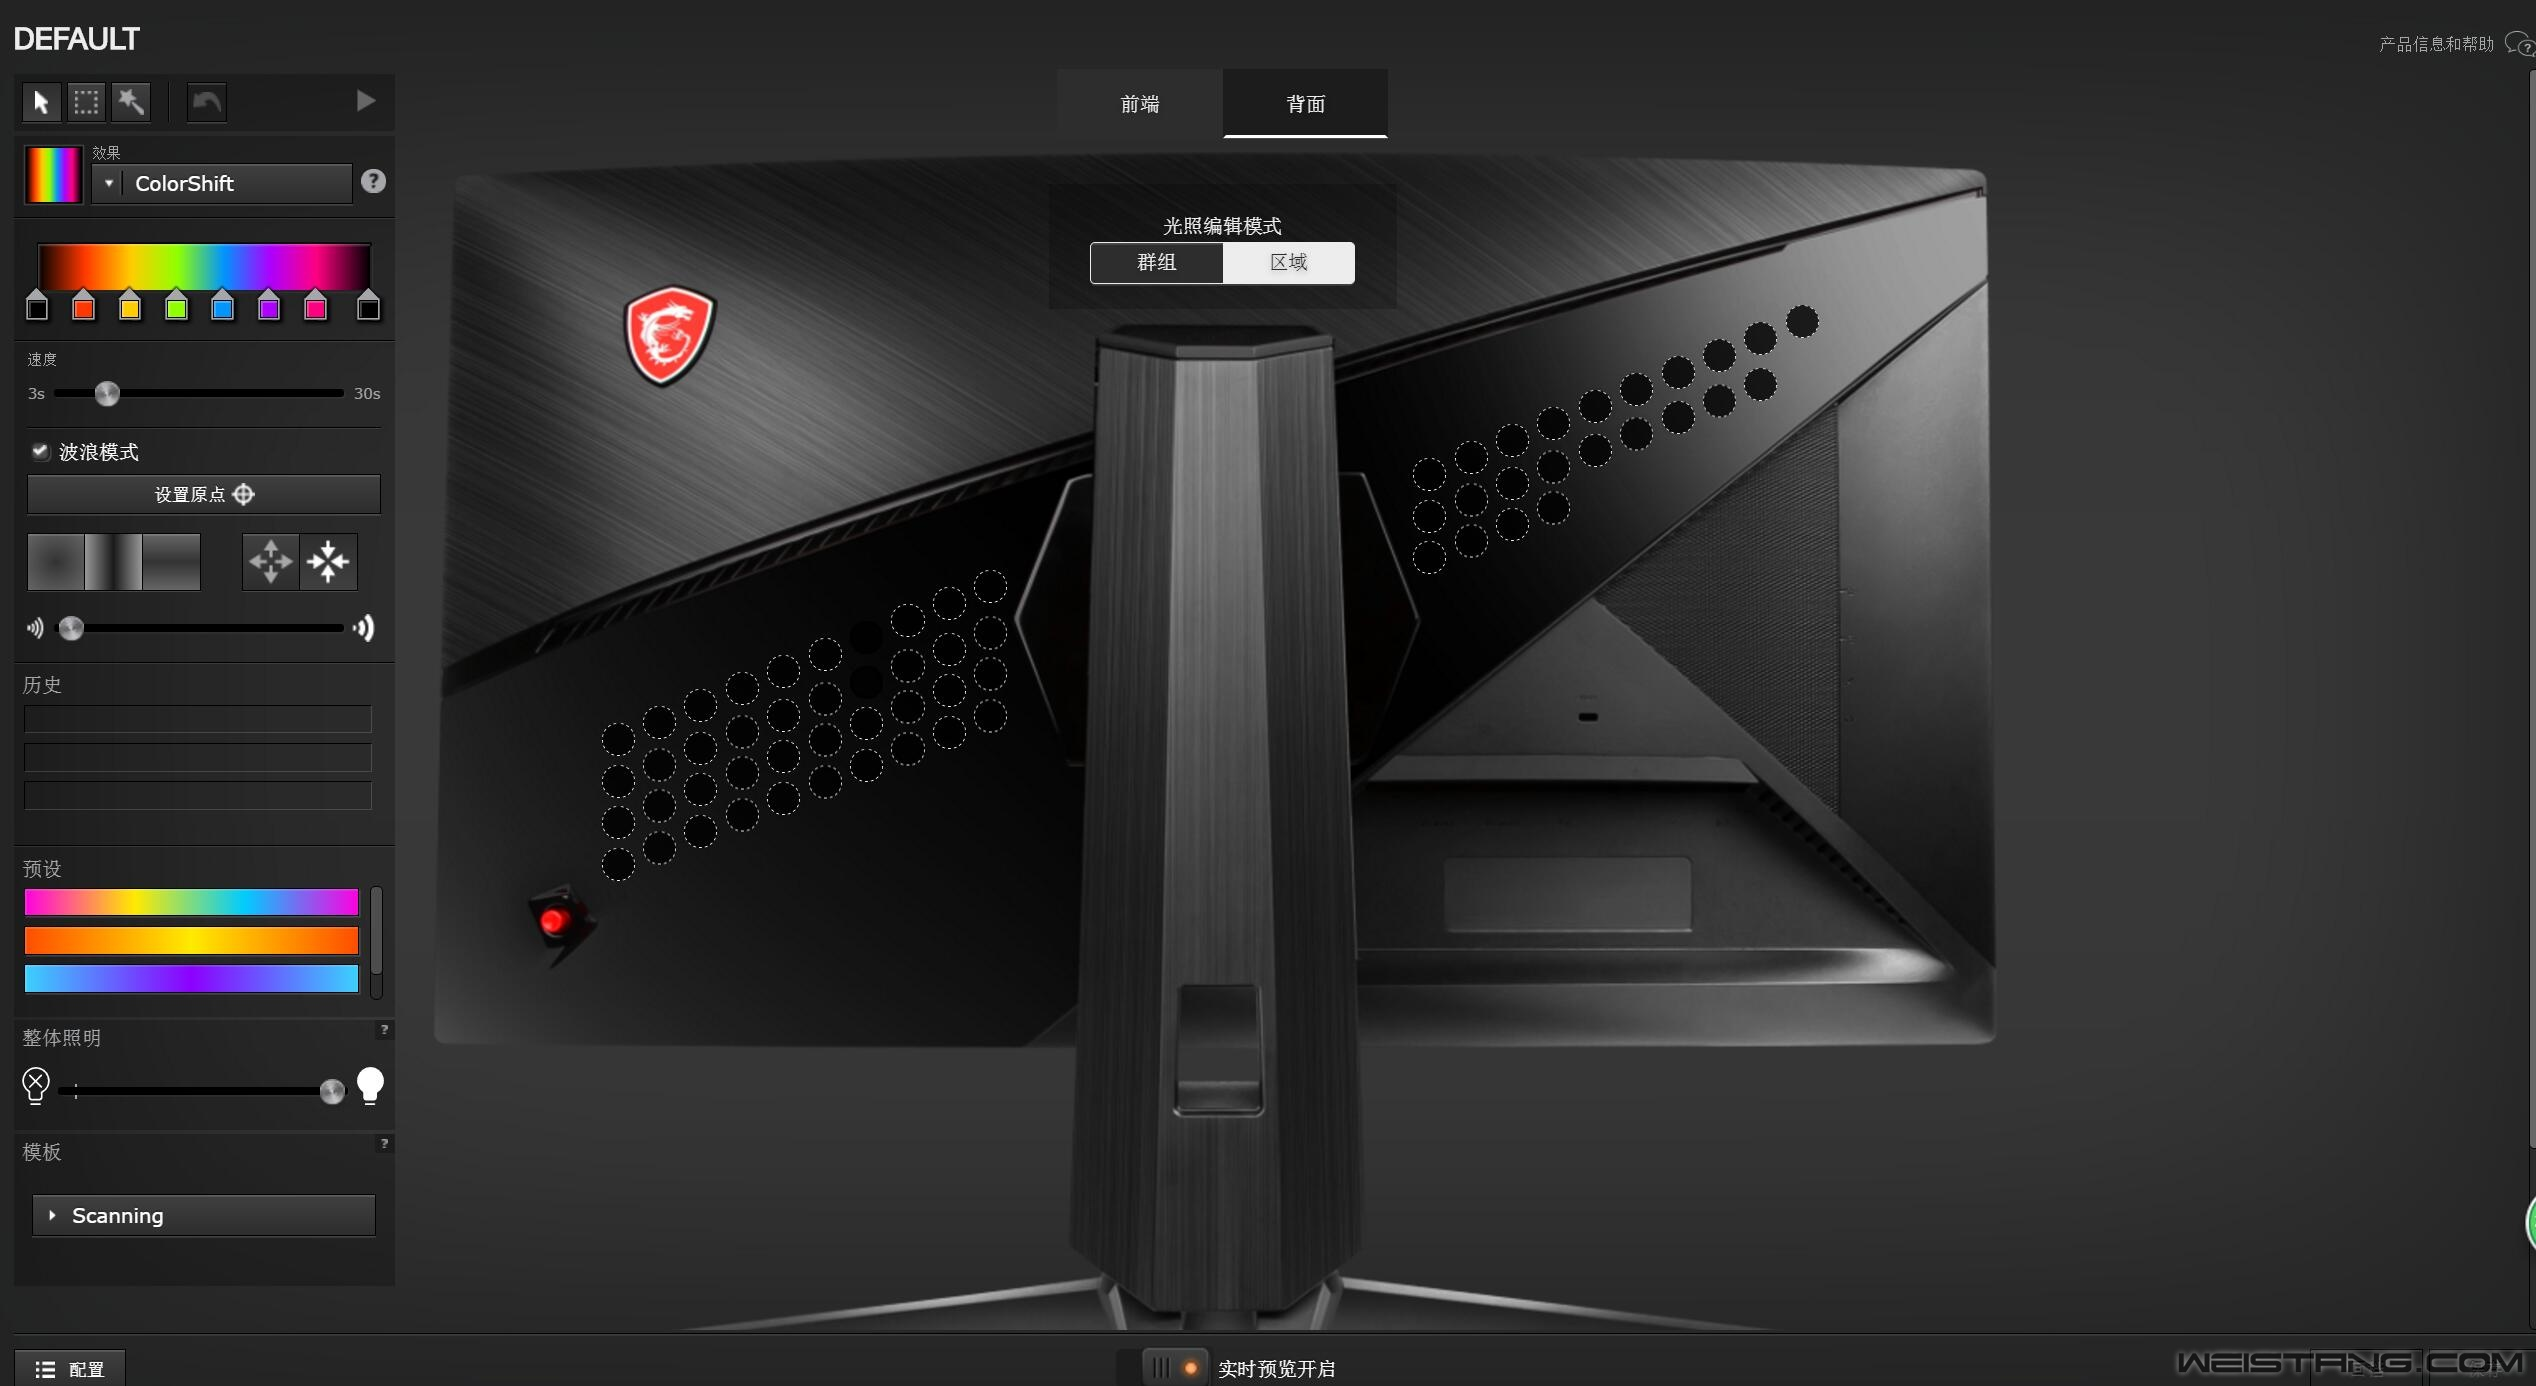 SteelSeriesEngine界面1 (4).jpg